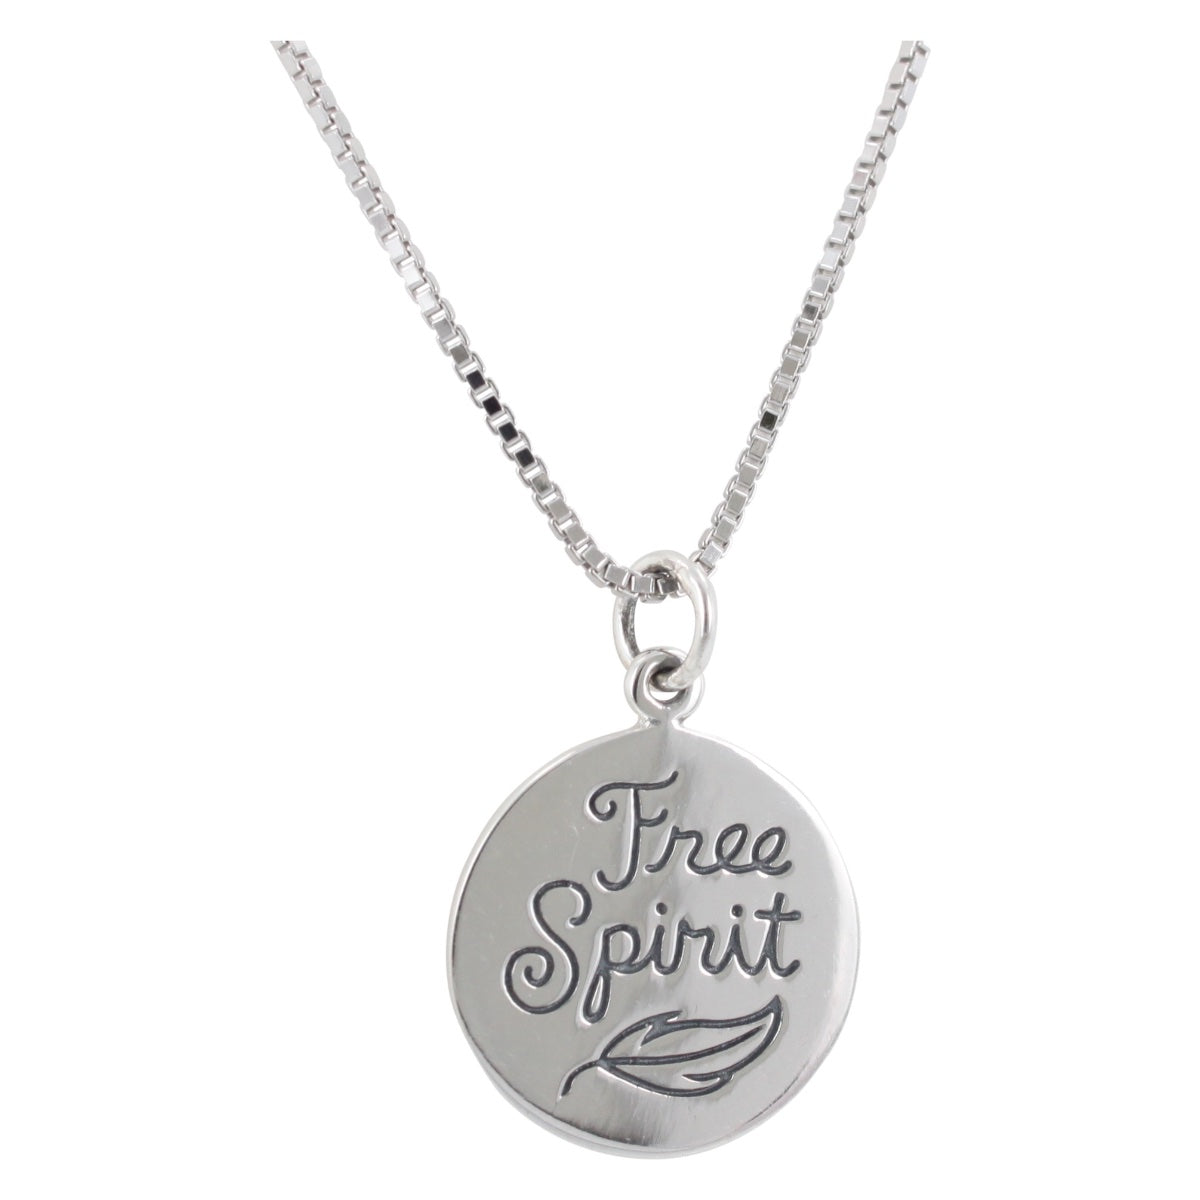 spirit pendant products fajl necklace dsc free sheila